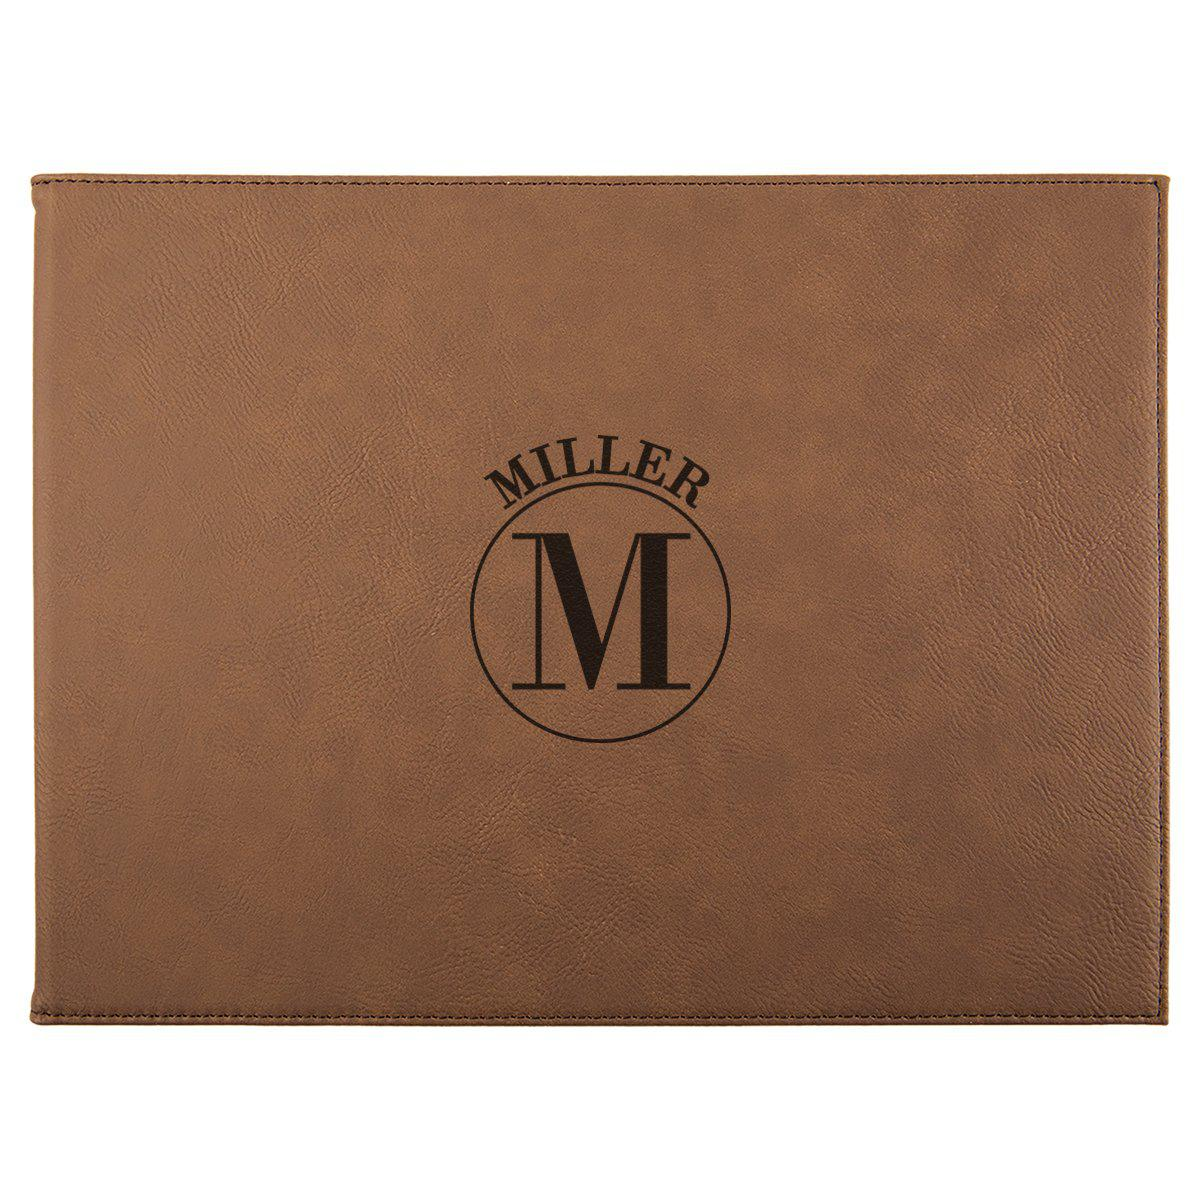 9? x 12? Personalized Certificate Holder - Dark Brown